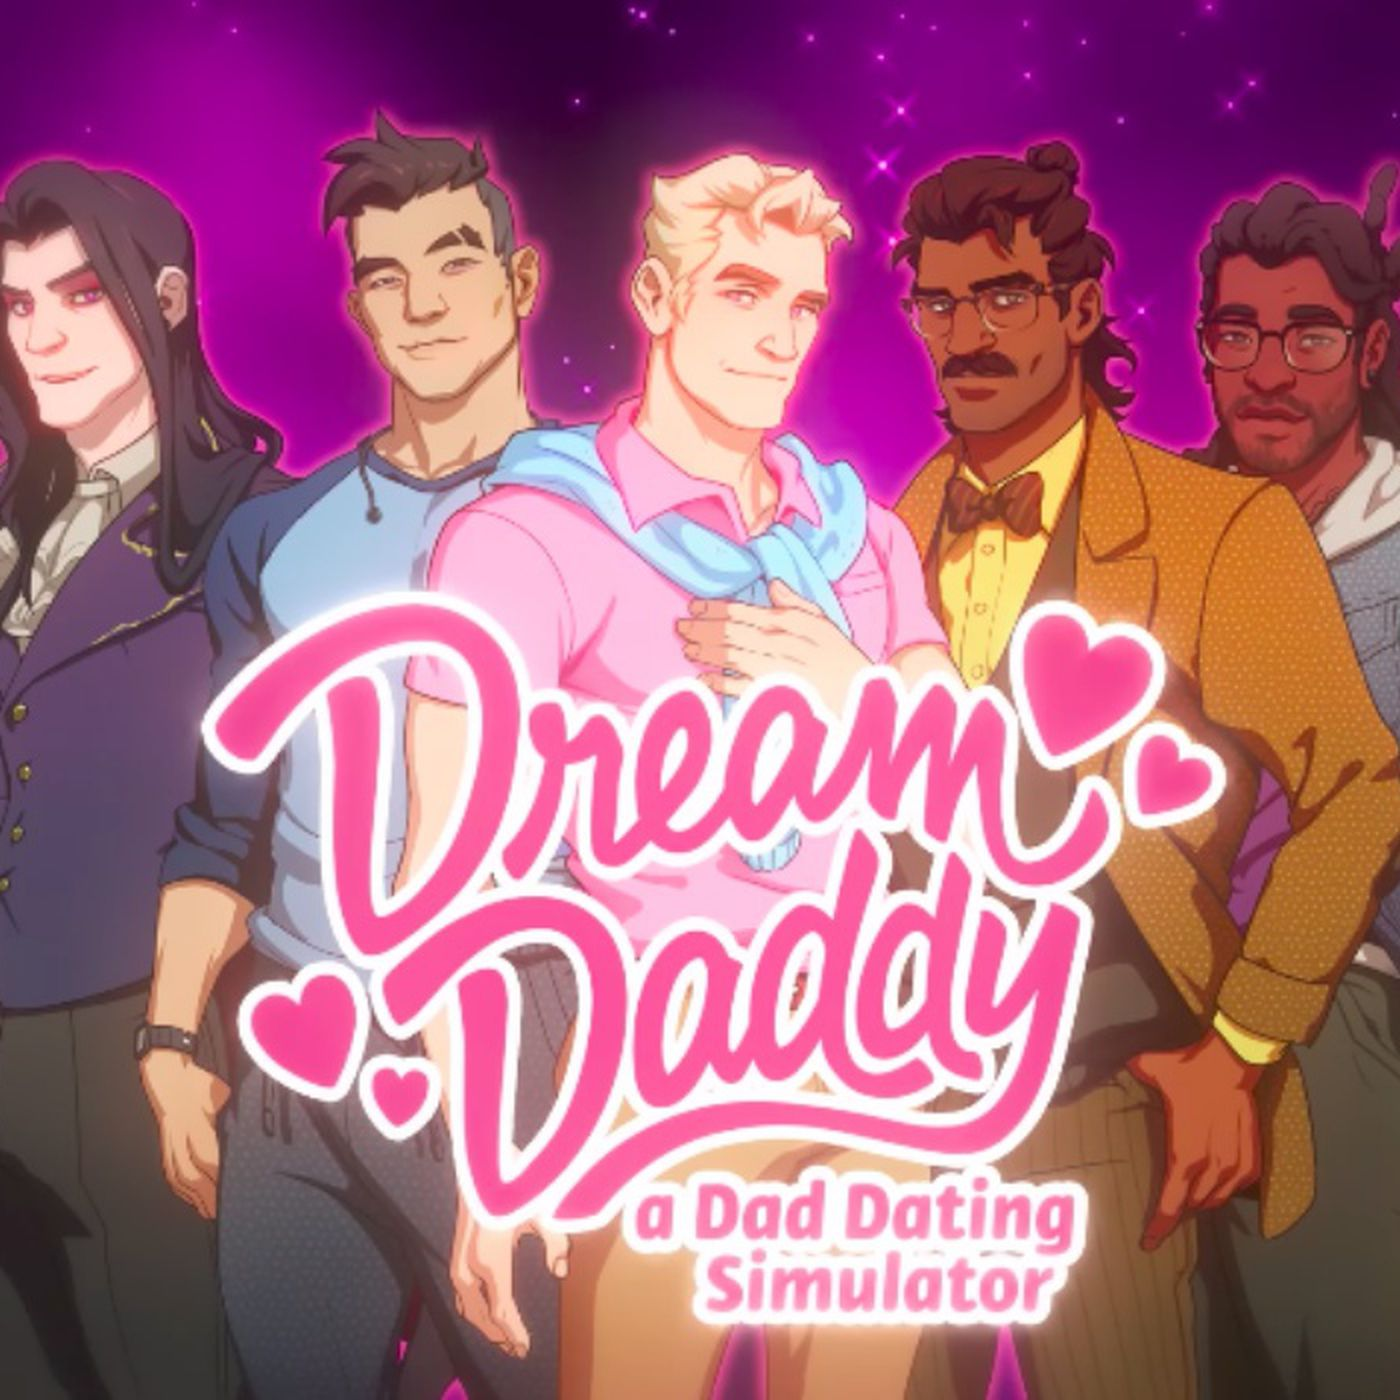 What are dating simulation games